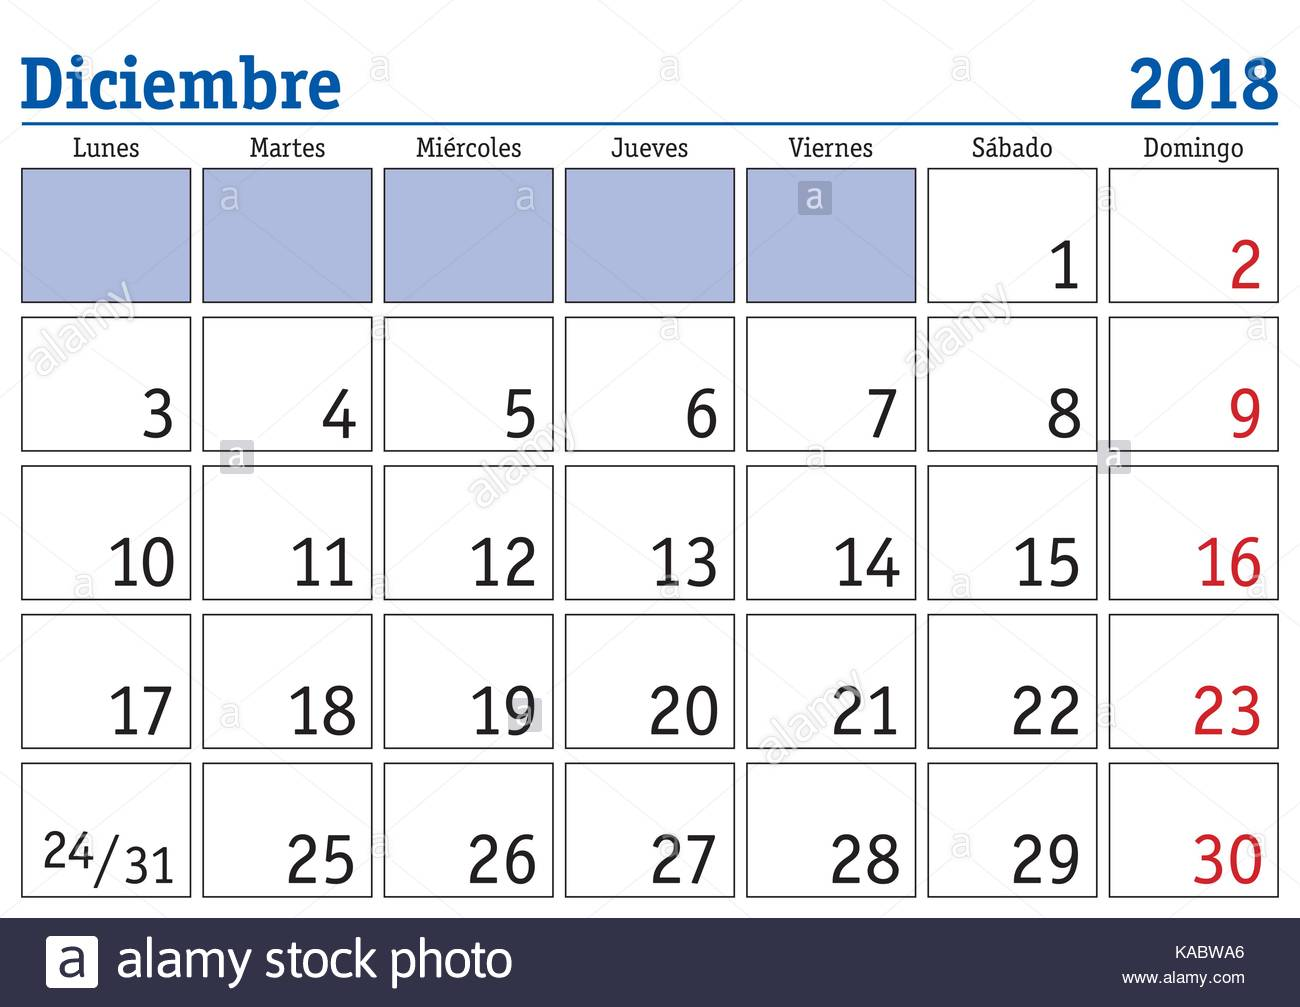 December Month In A Year 2018 Wall Calendar In Spanish Diciembre